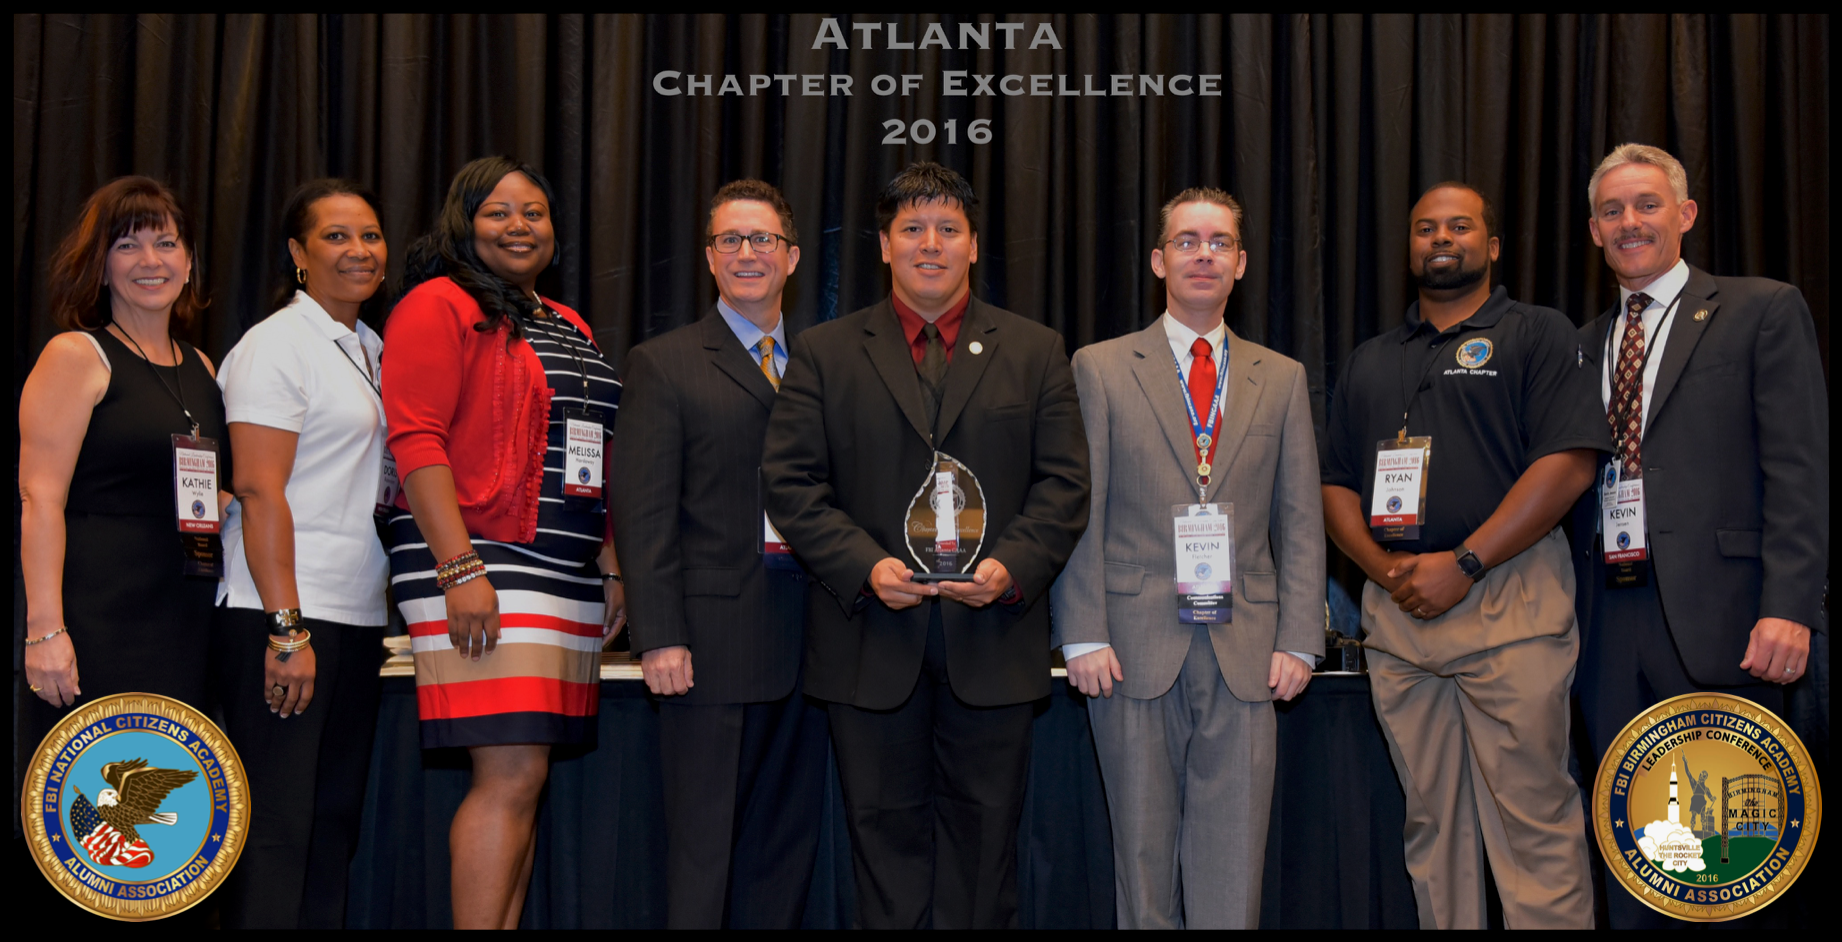 Atlanta Chapter of Excellence Award